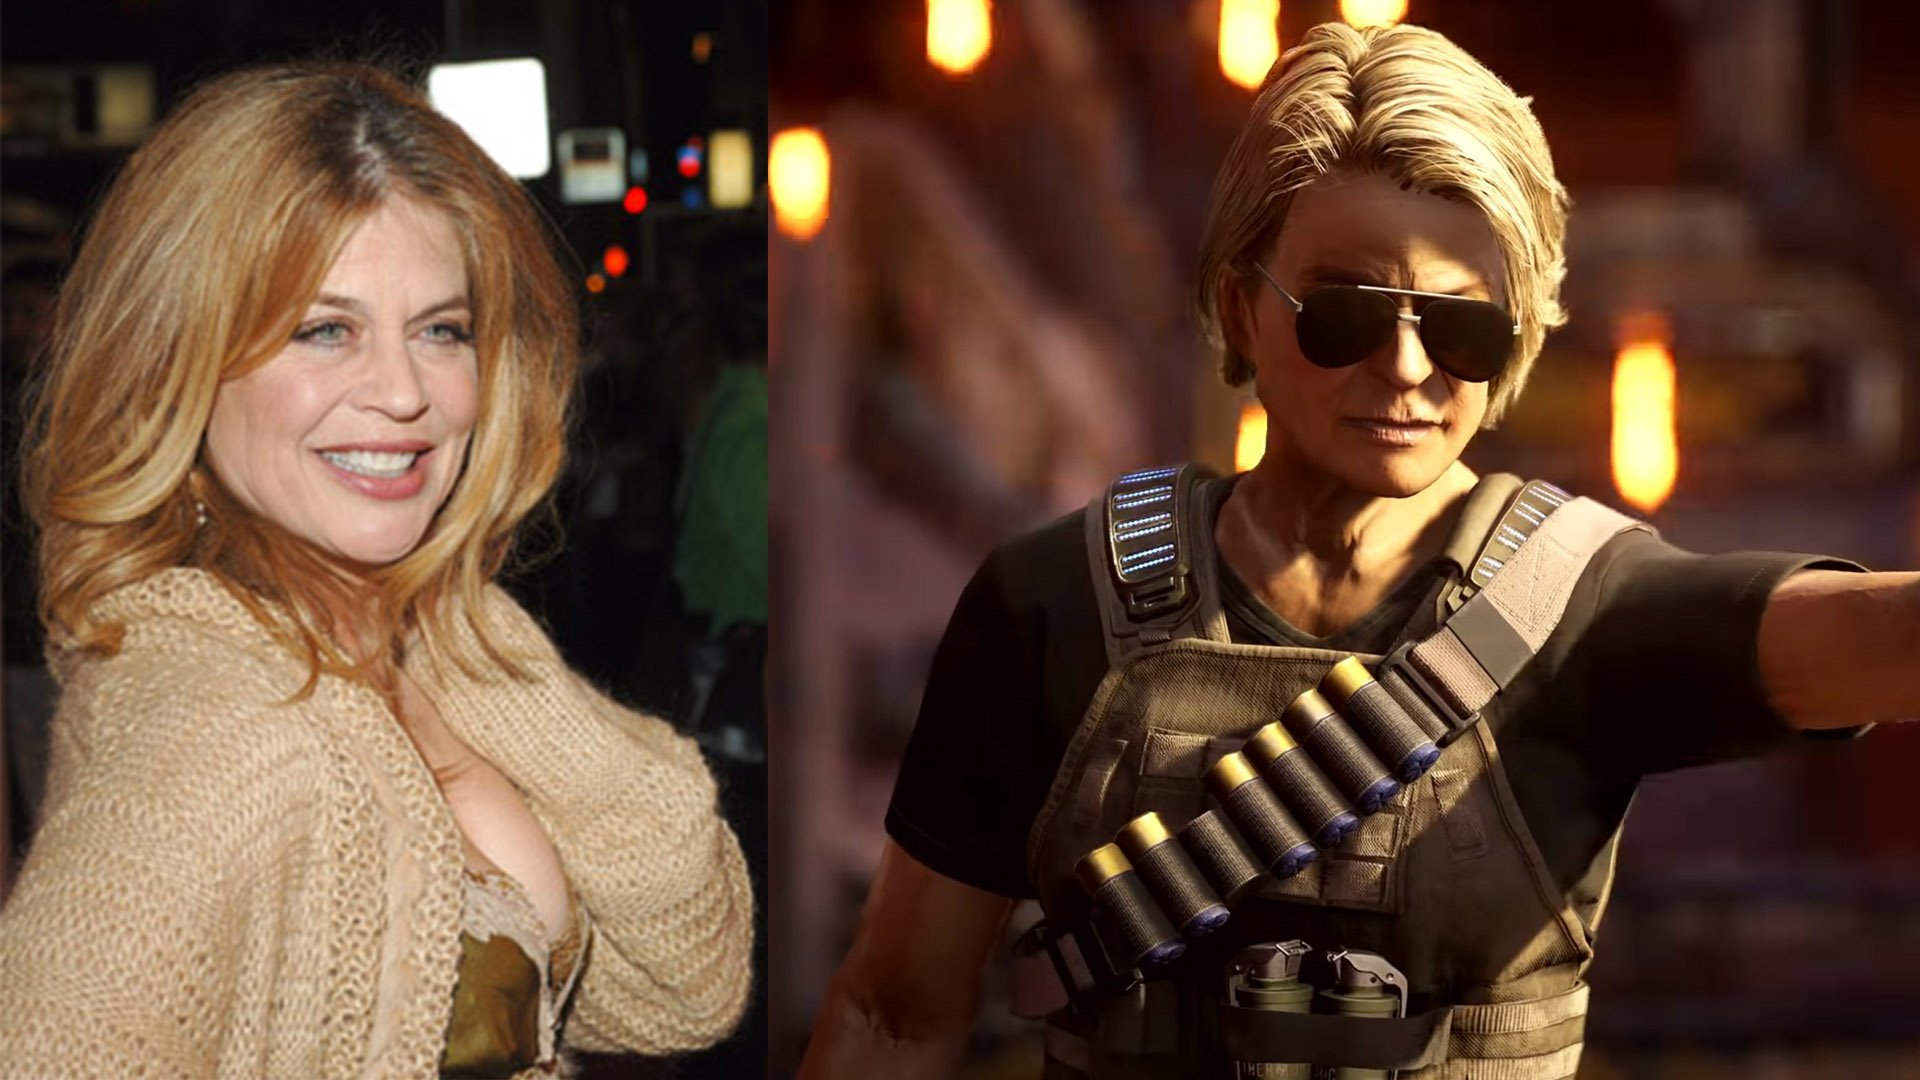 Gears 5 Sarah Connor voice actor